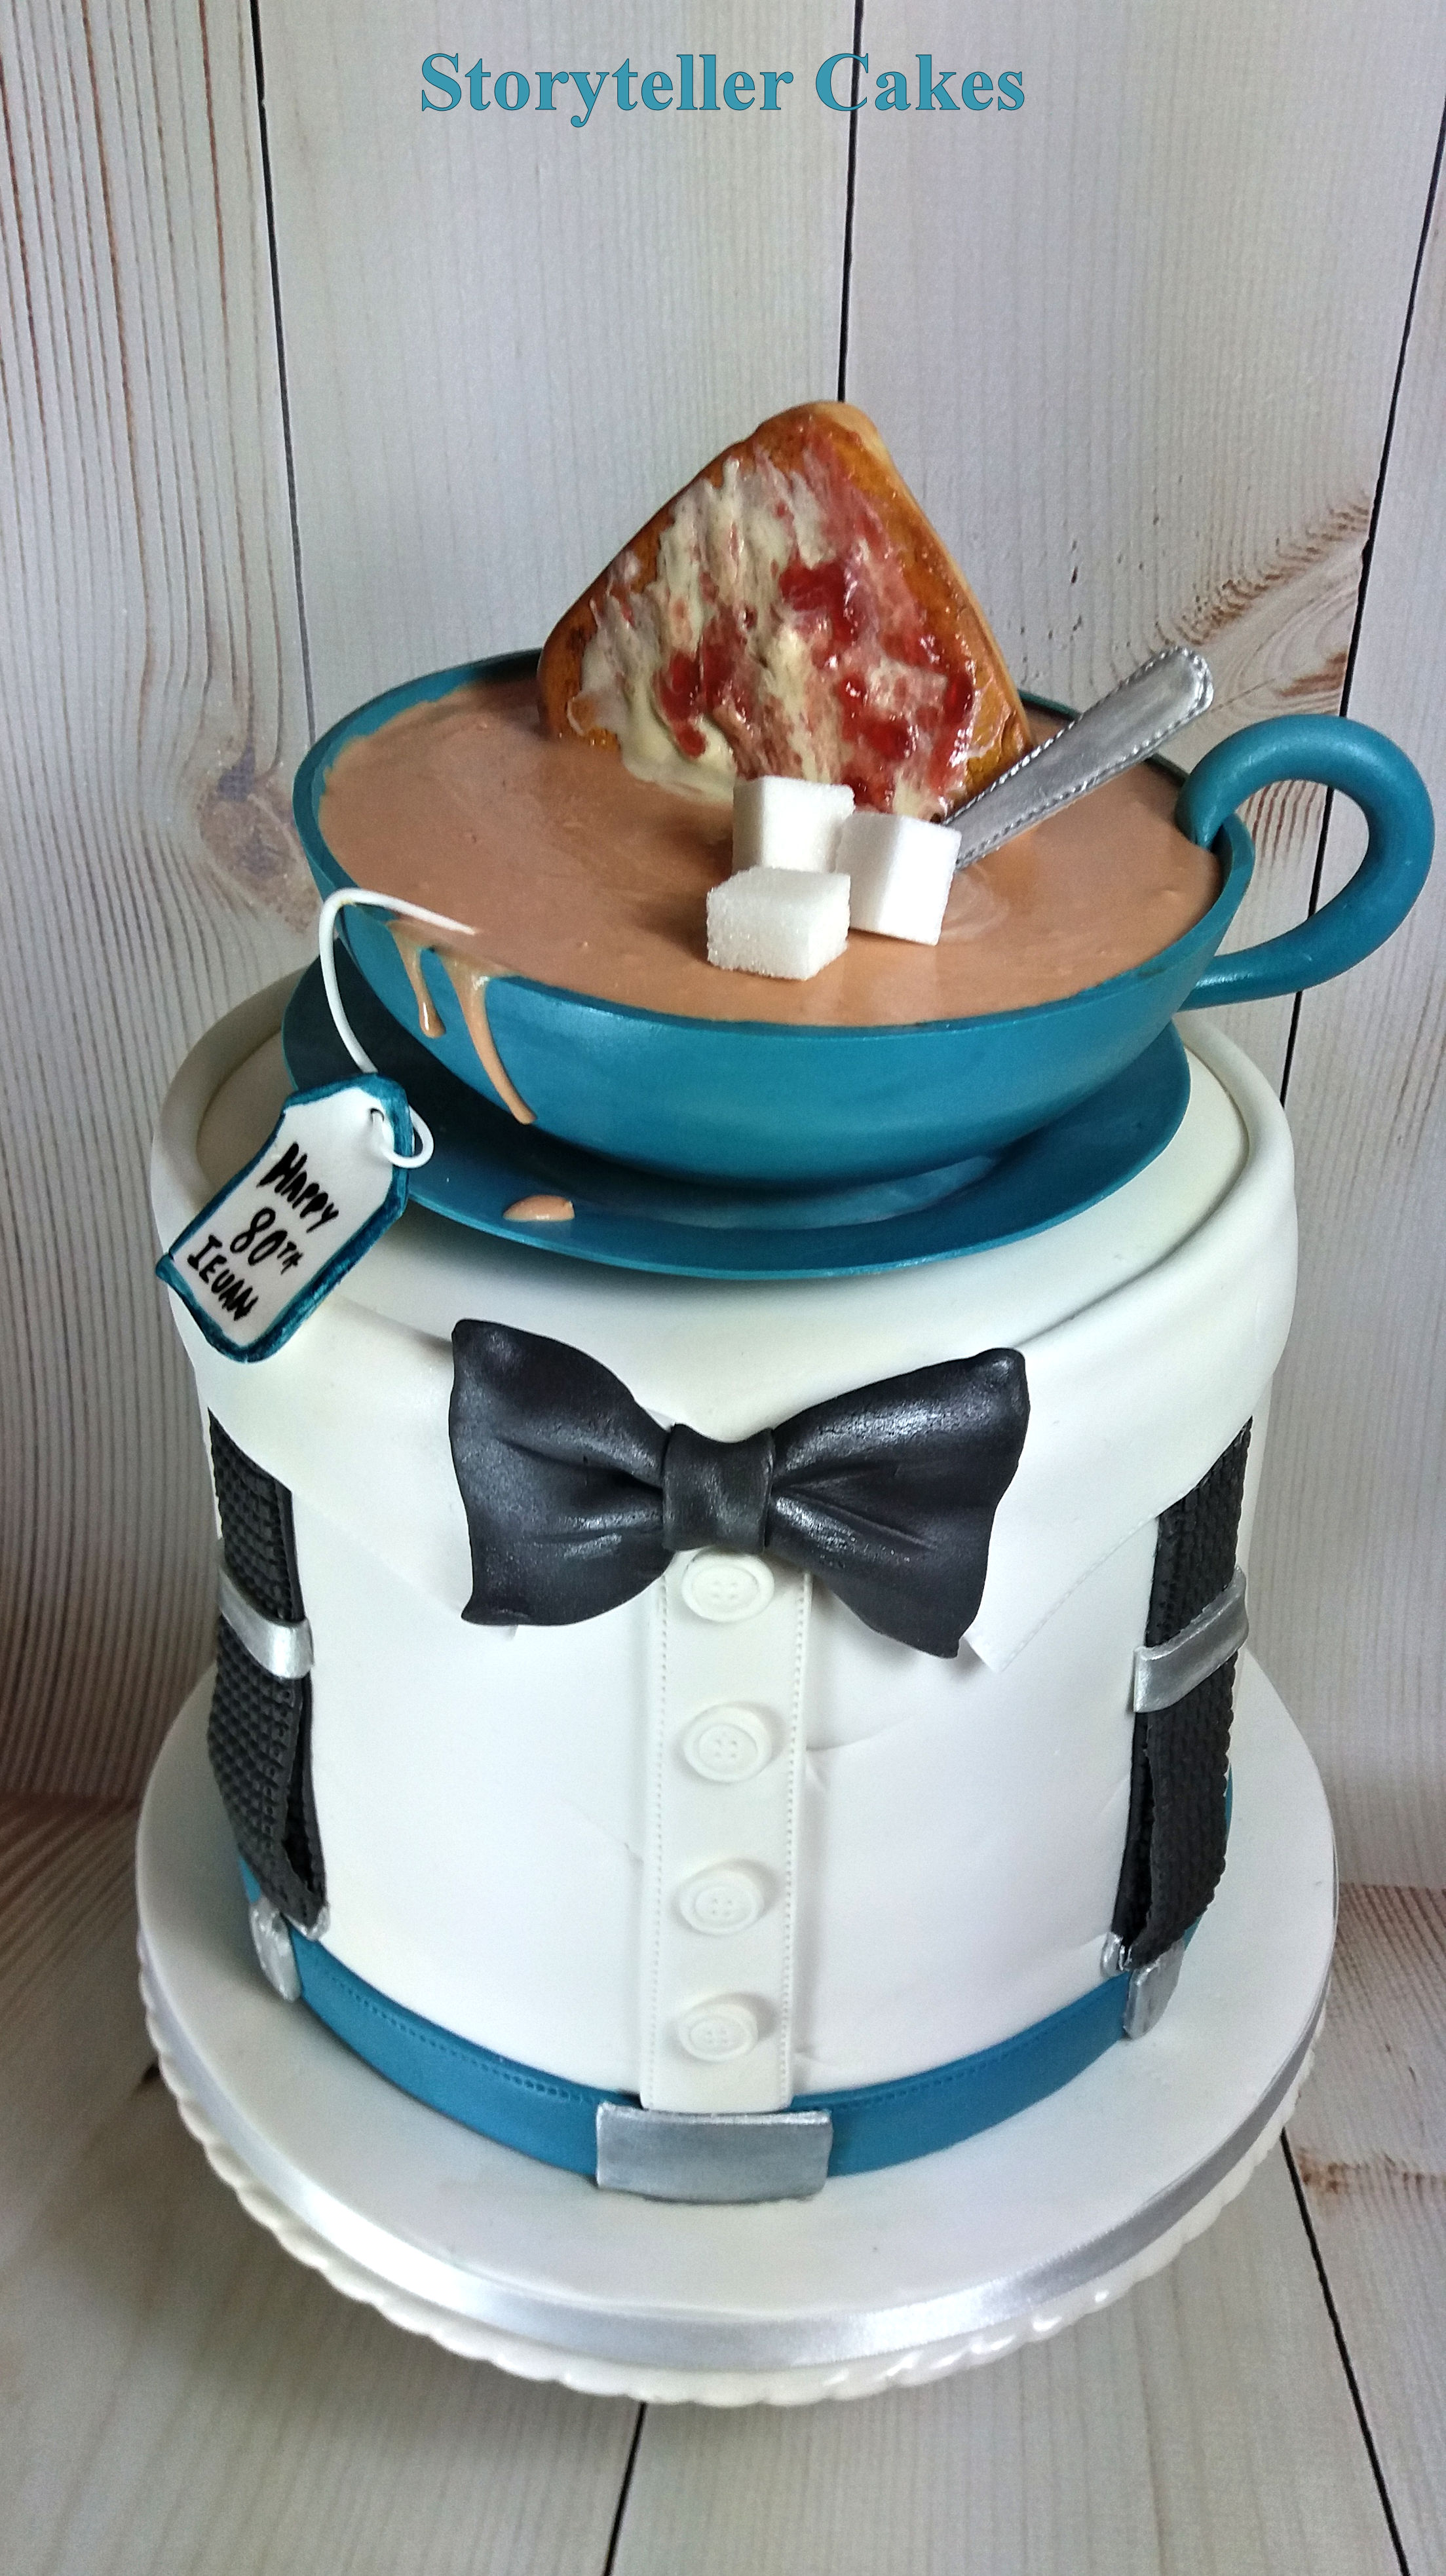 mans suit and tie cup of tea cake3.jpg